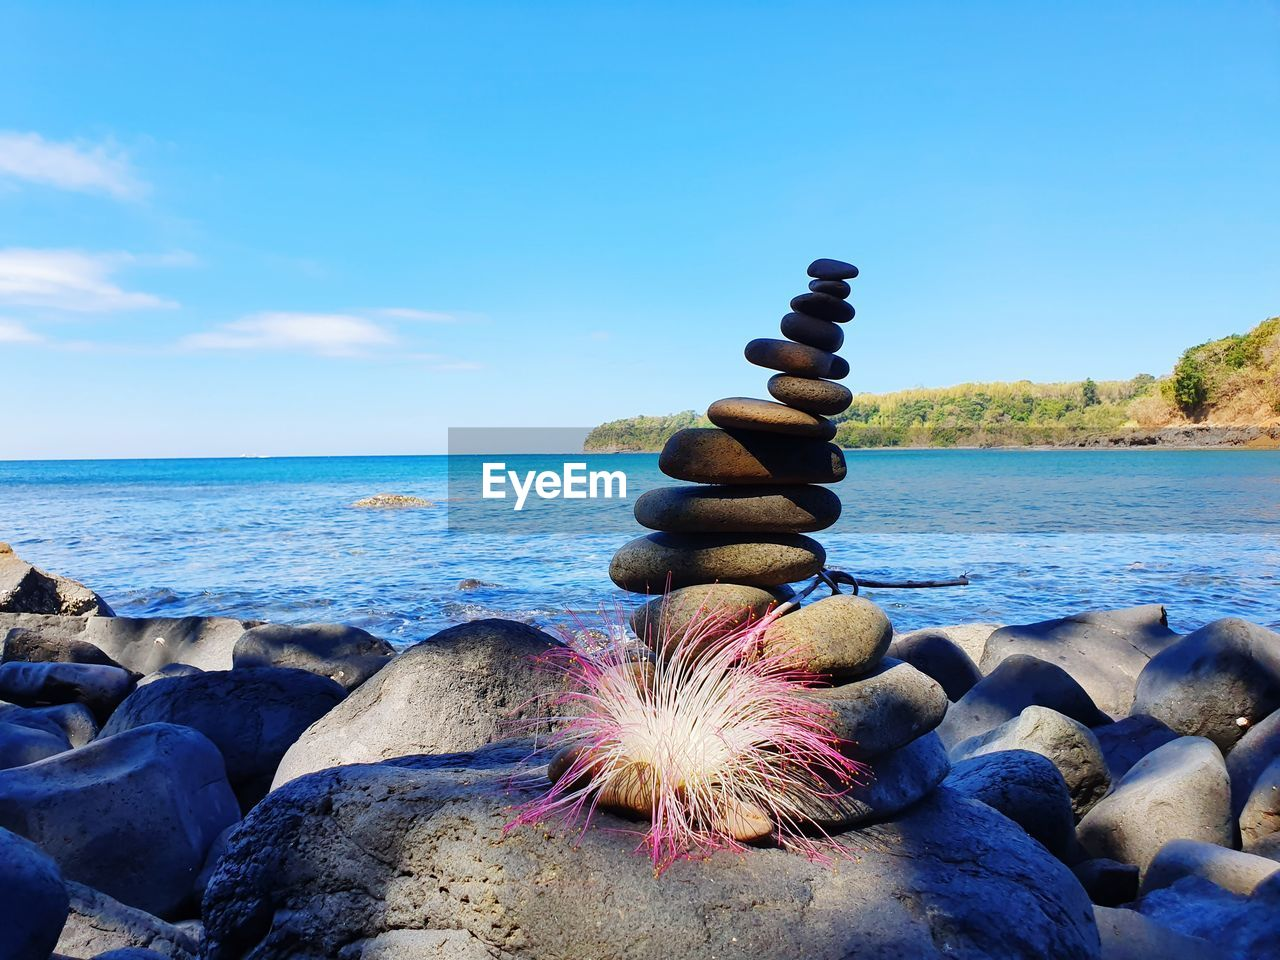 water, sea, sky, solid, rock, beach, beauty in nature, stone - object, horizon, horizon over water, rock - object, scenics - nature, tranquility, nature, land, stack, tranquil scene, balance, zen-like, pebble, no people, outdoors